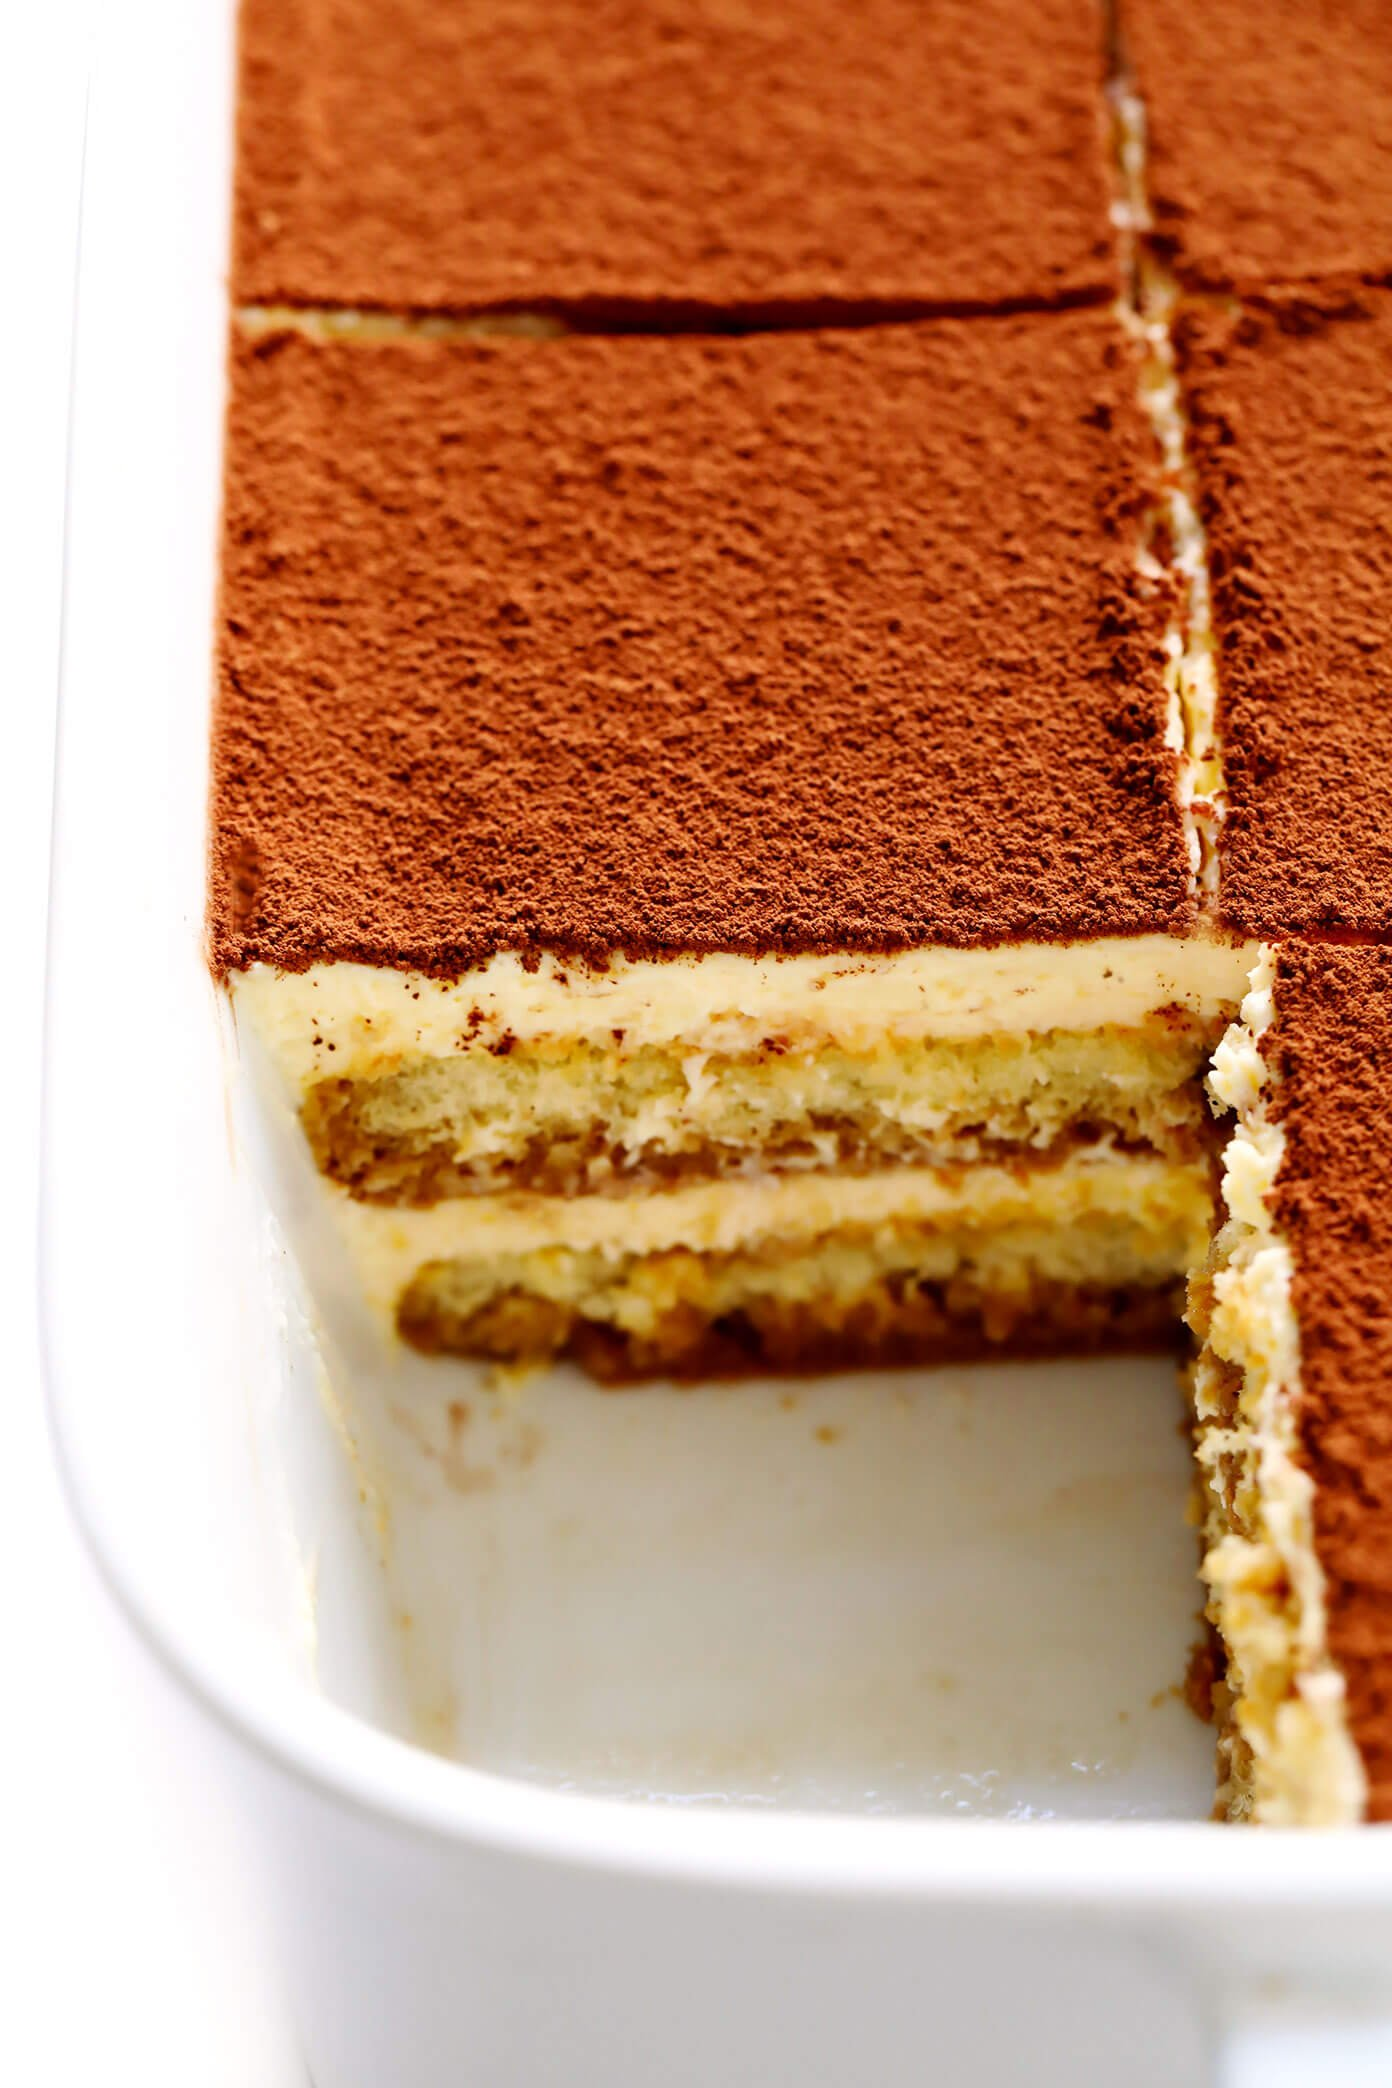 Tiramisu in the pan